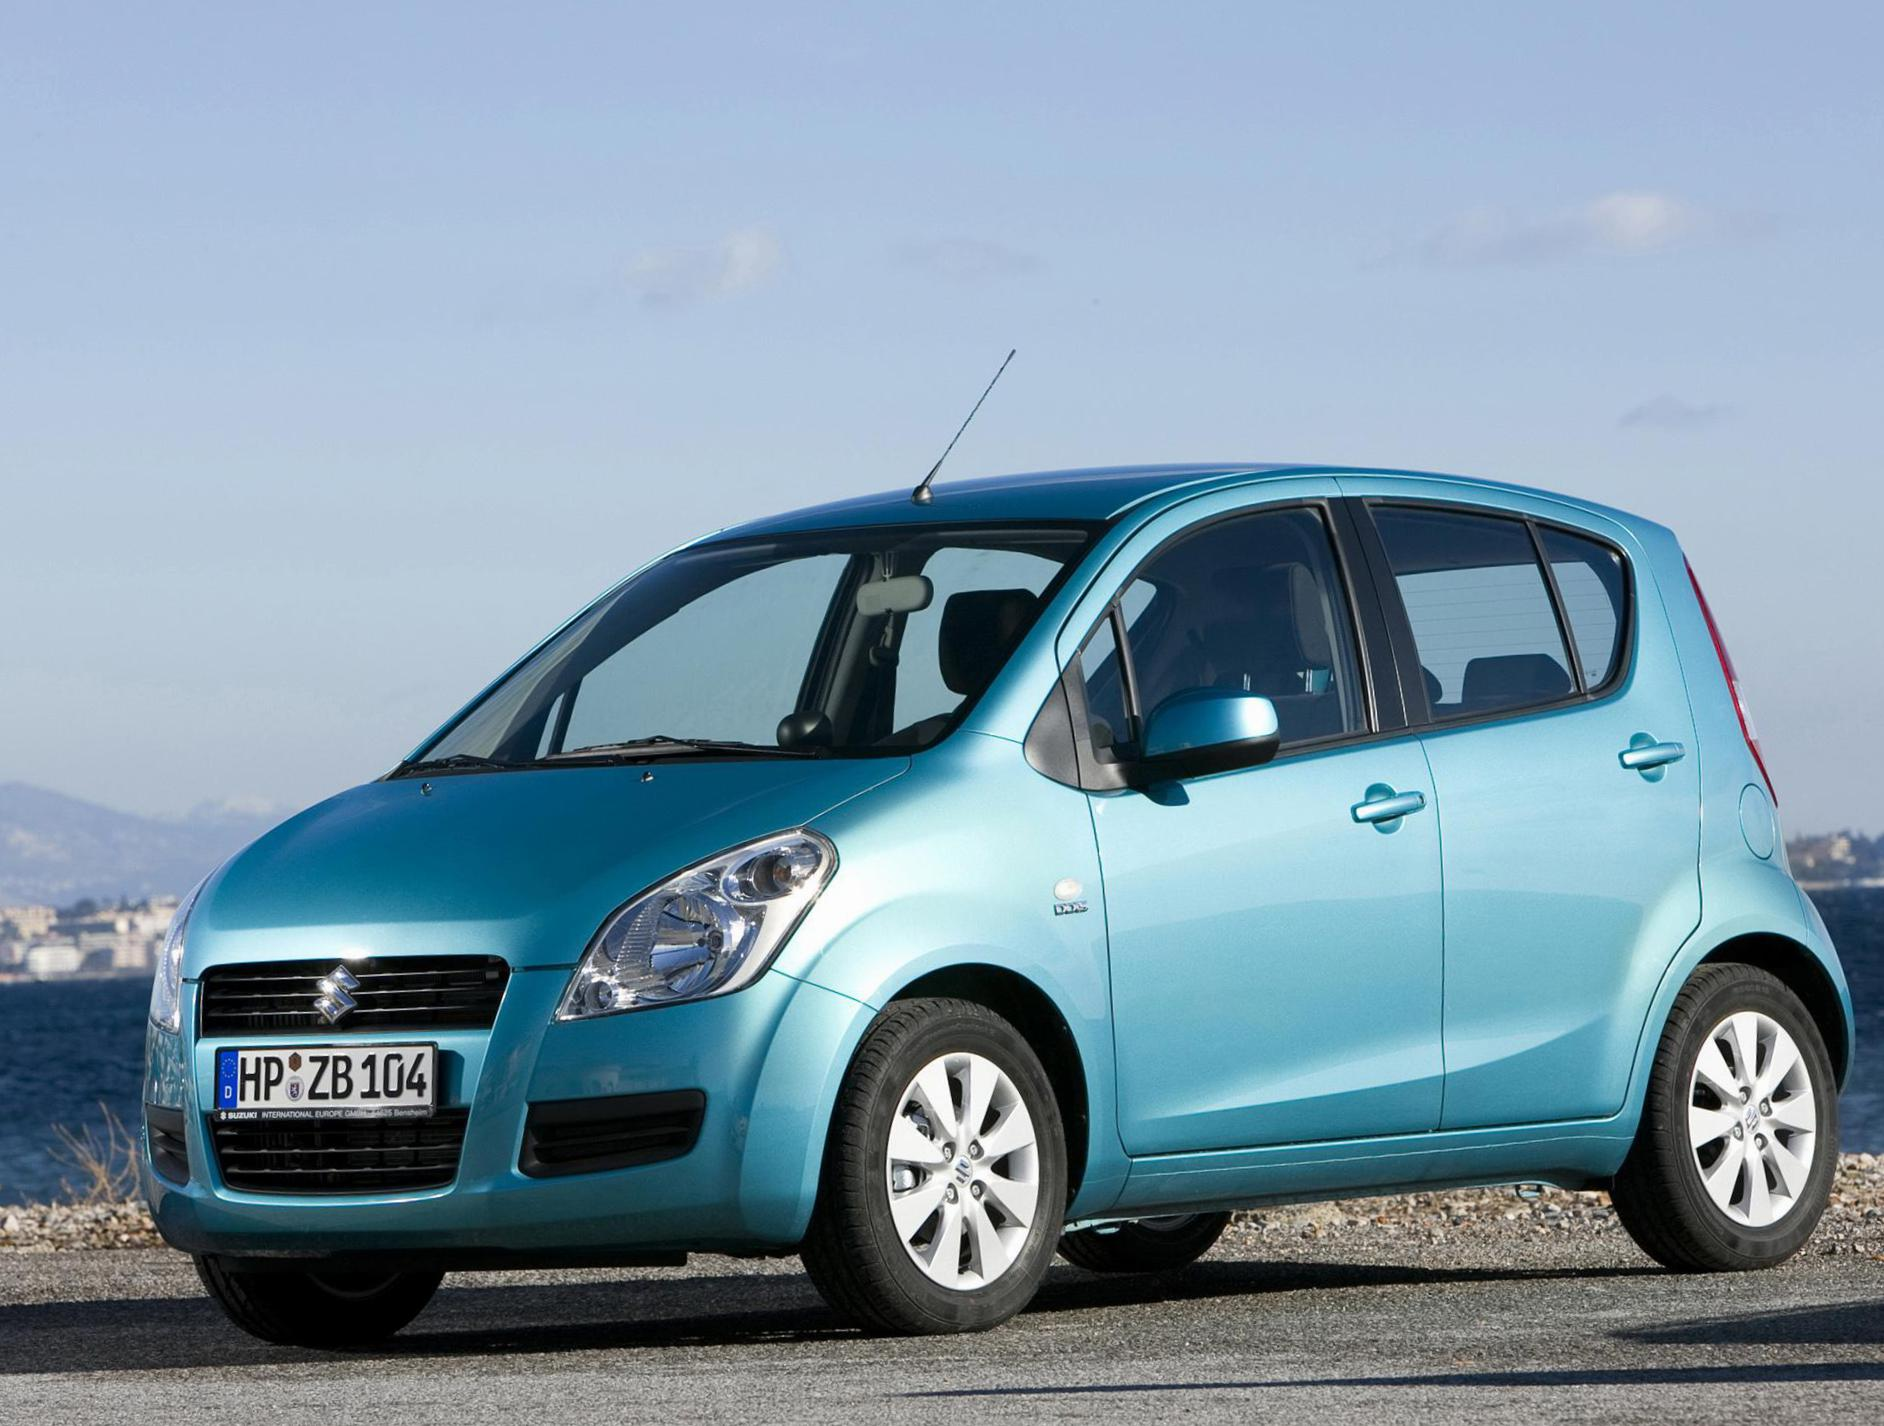 Suzuki Splash for sale 2008